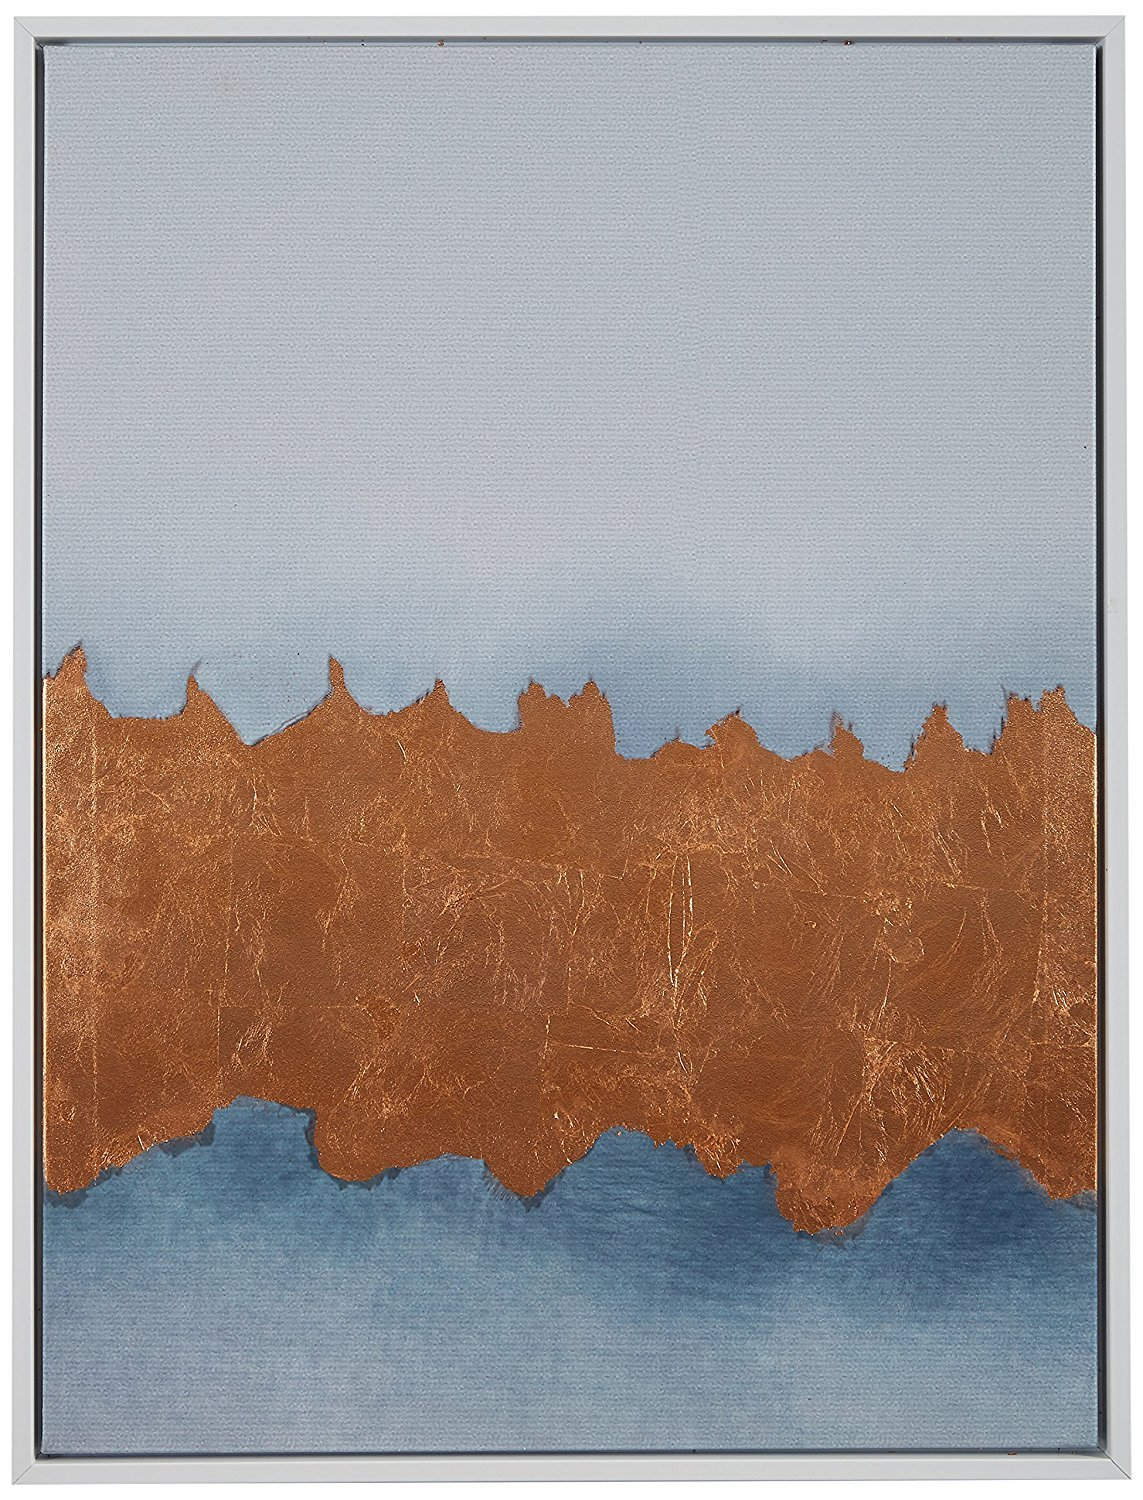 Copper Metallic Foil Canvas Print in White Frame, 31.75'' x 41.75'' by Rivet